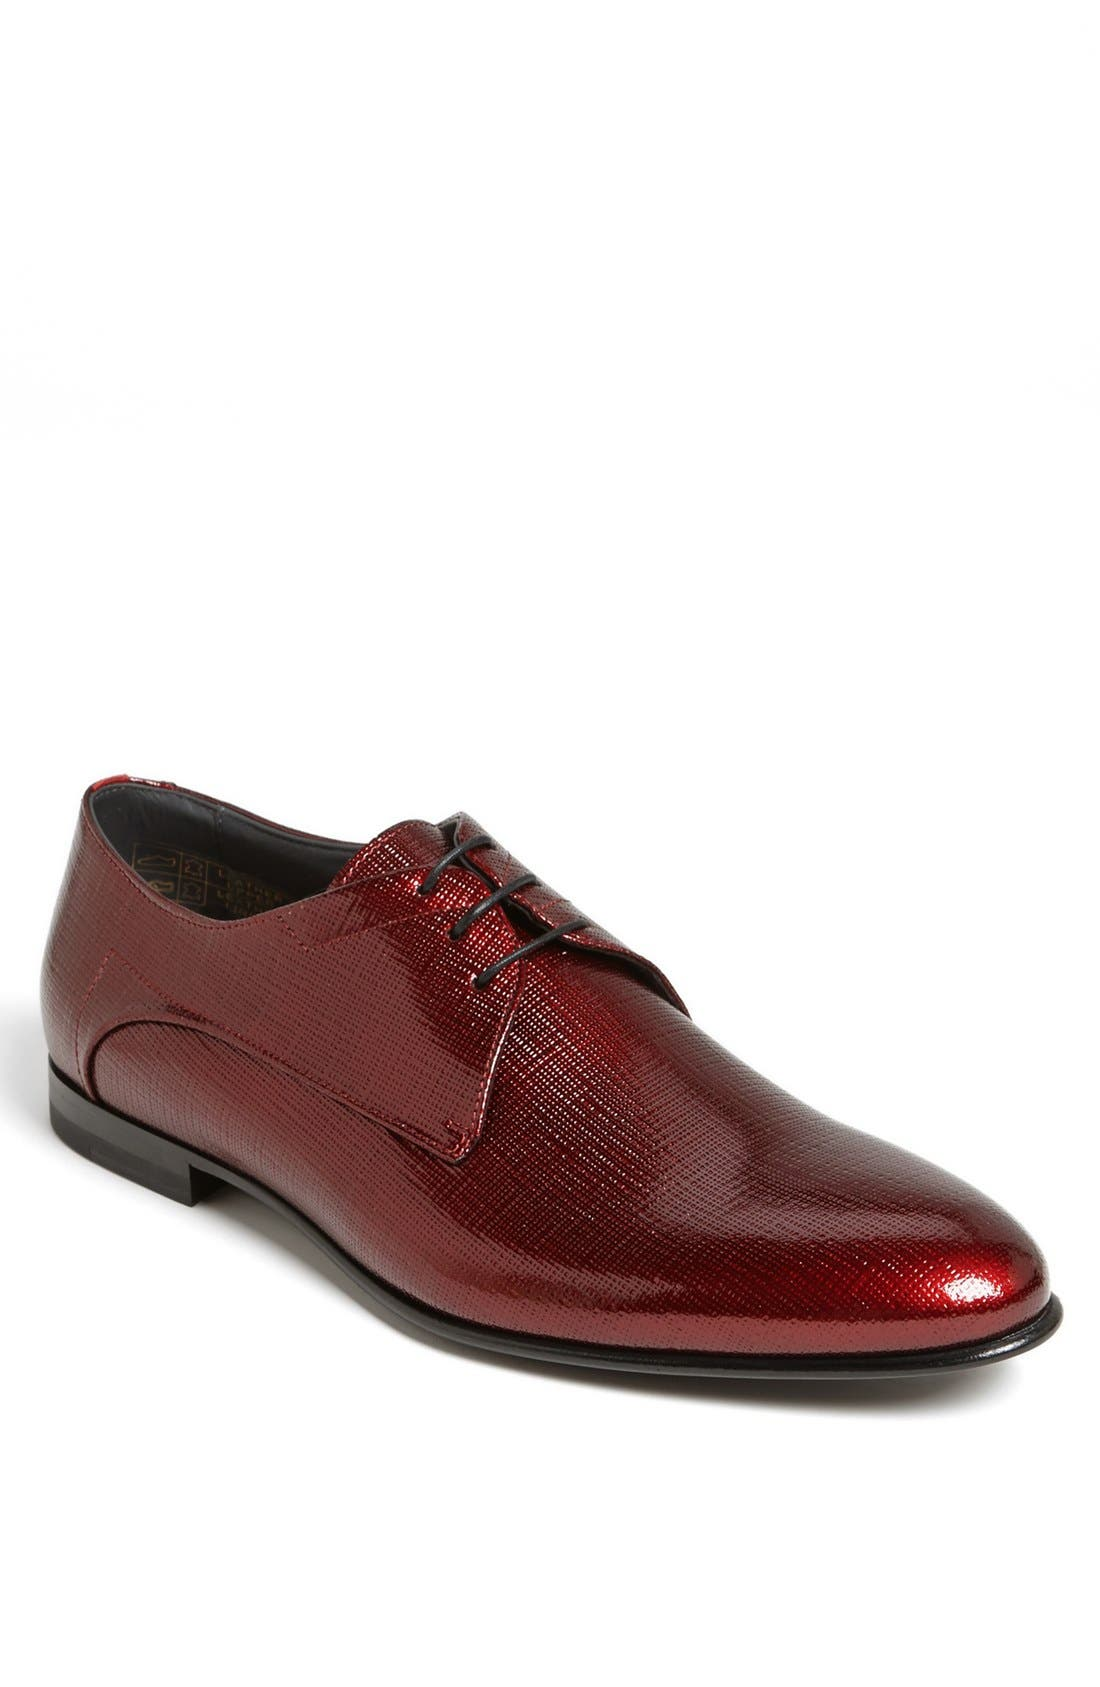 Alternate Image 1 Selected - HUGO 'Eviano' Plain Toe Derby